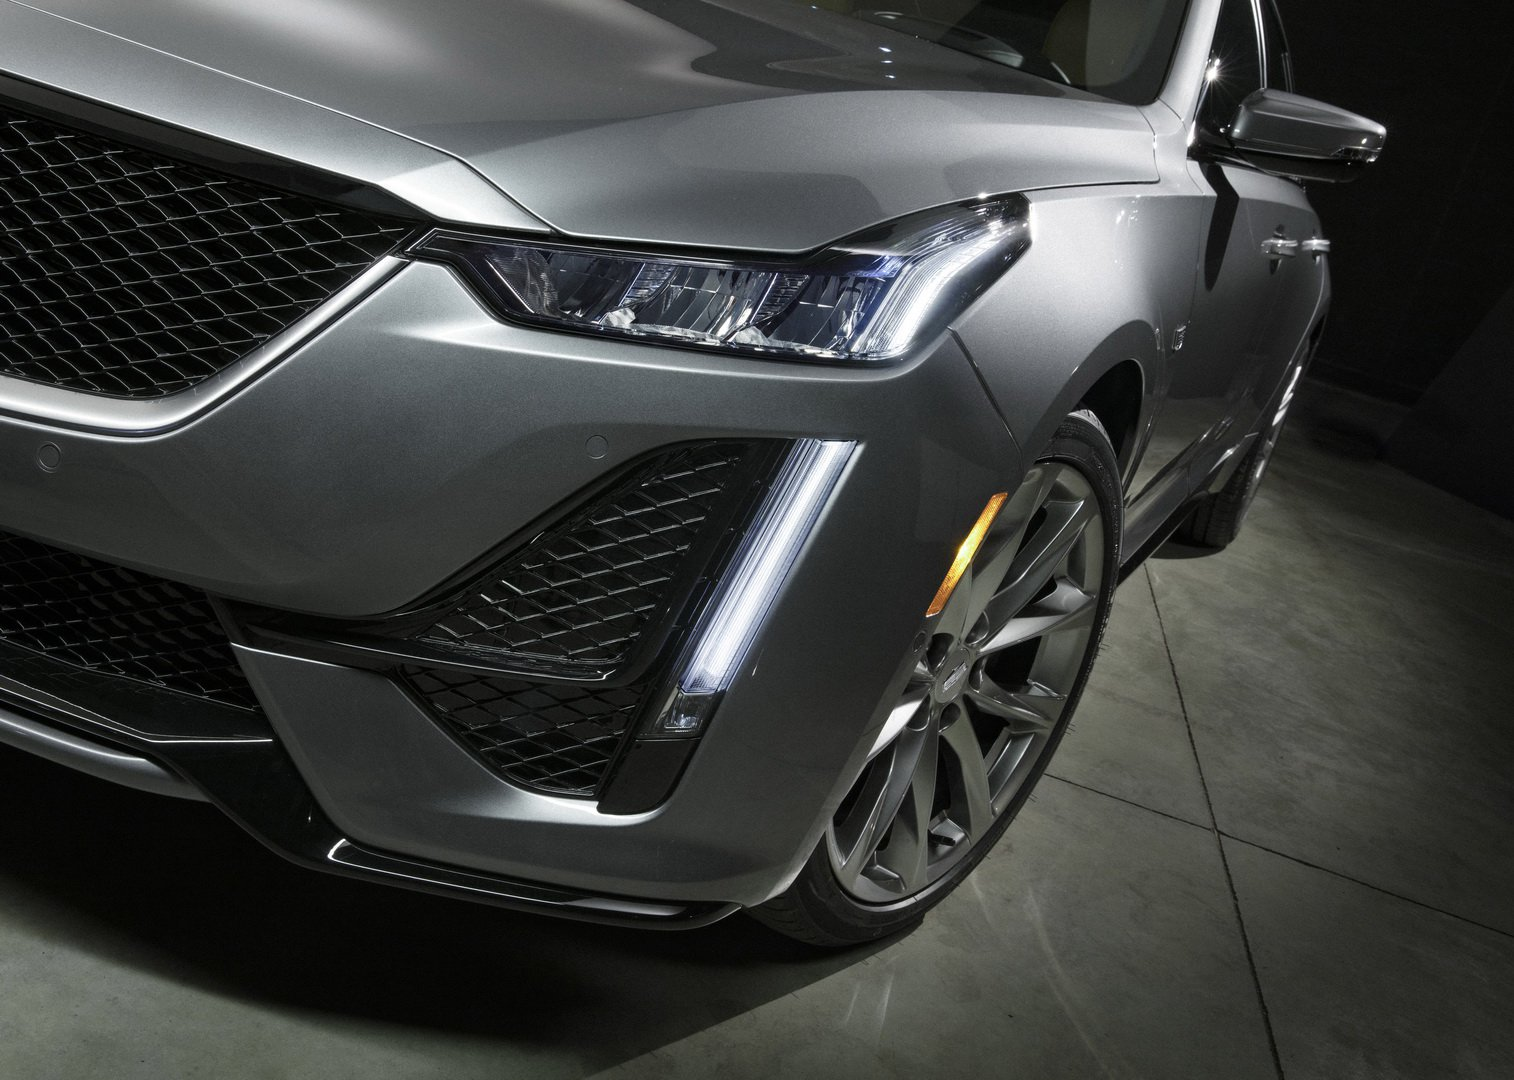 2020 Cadillac Ct5 Borrows Styling From Escala Concept